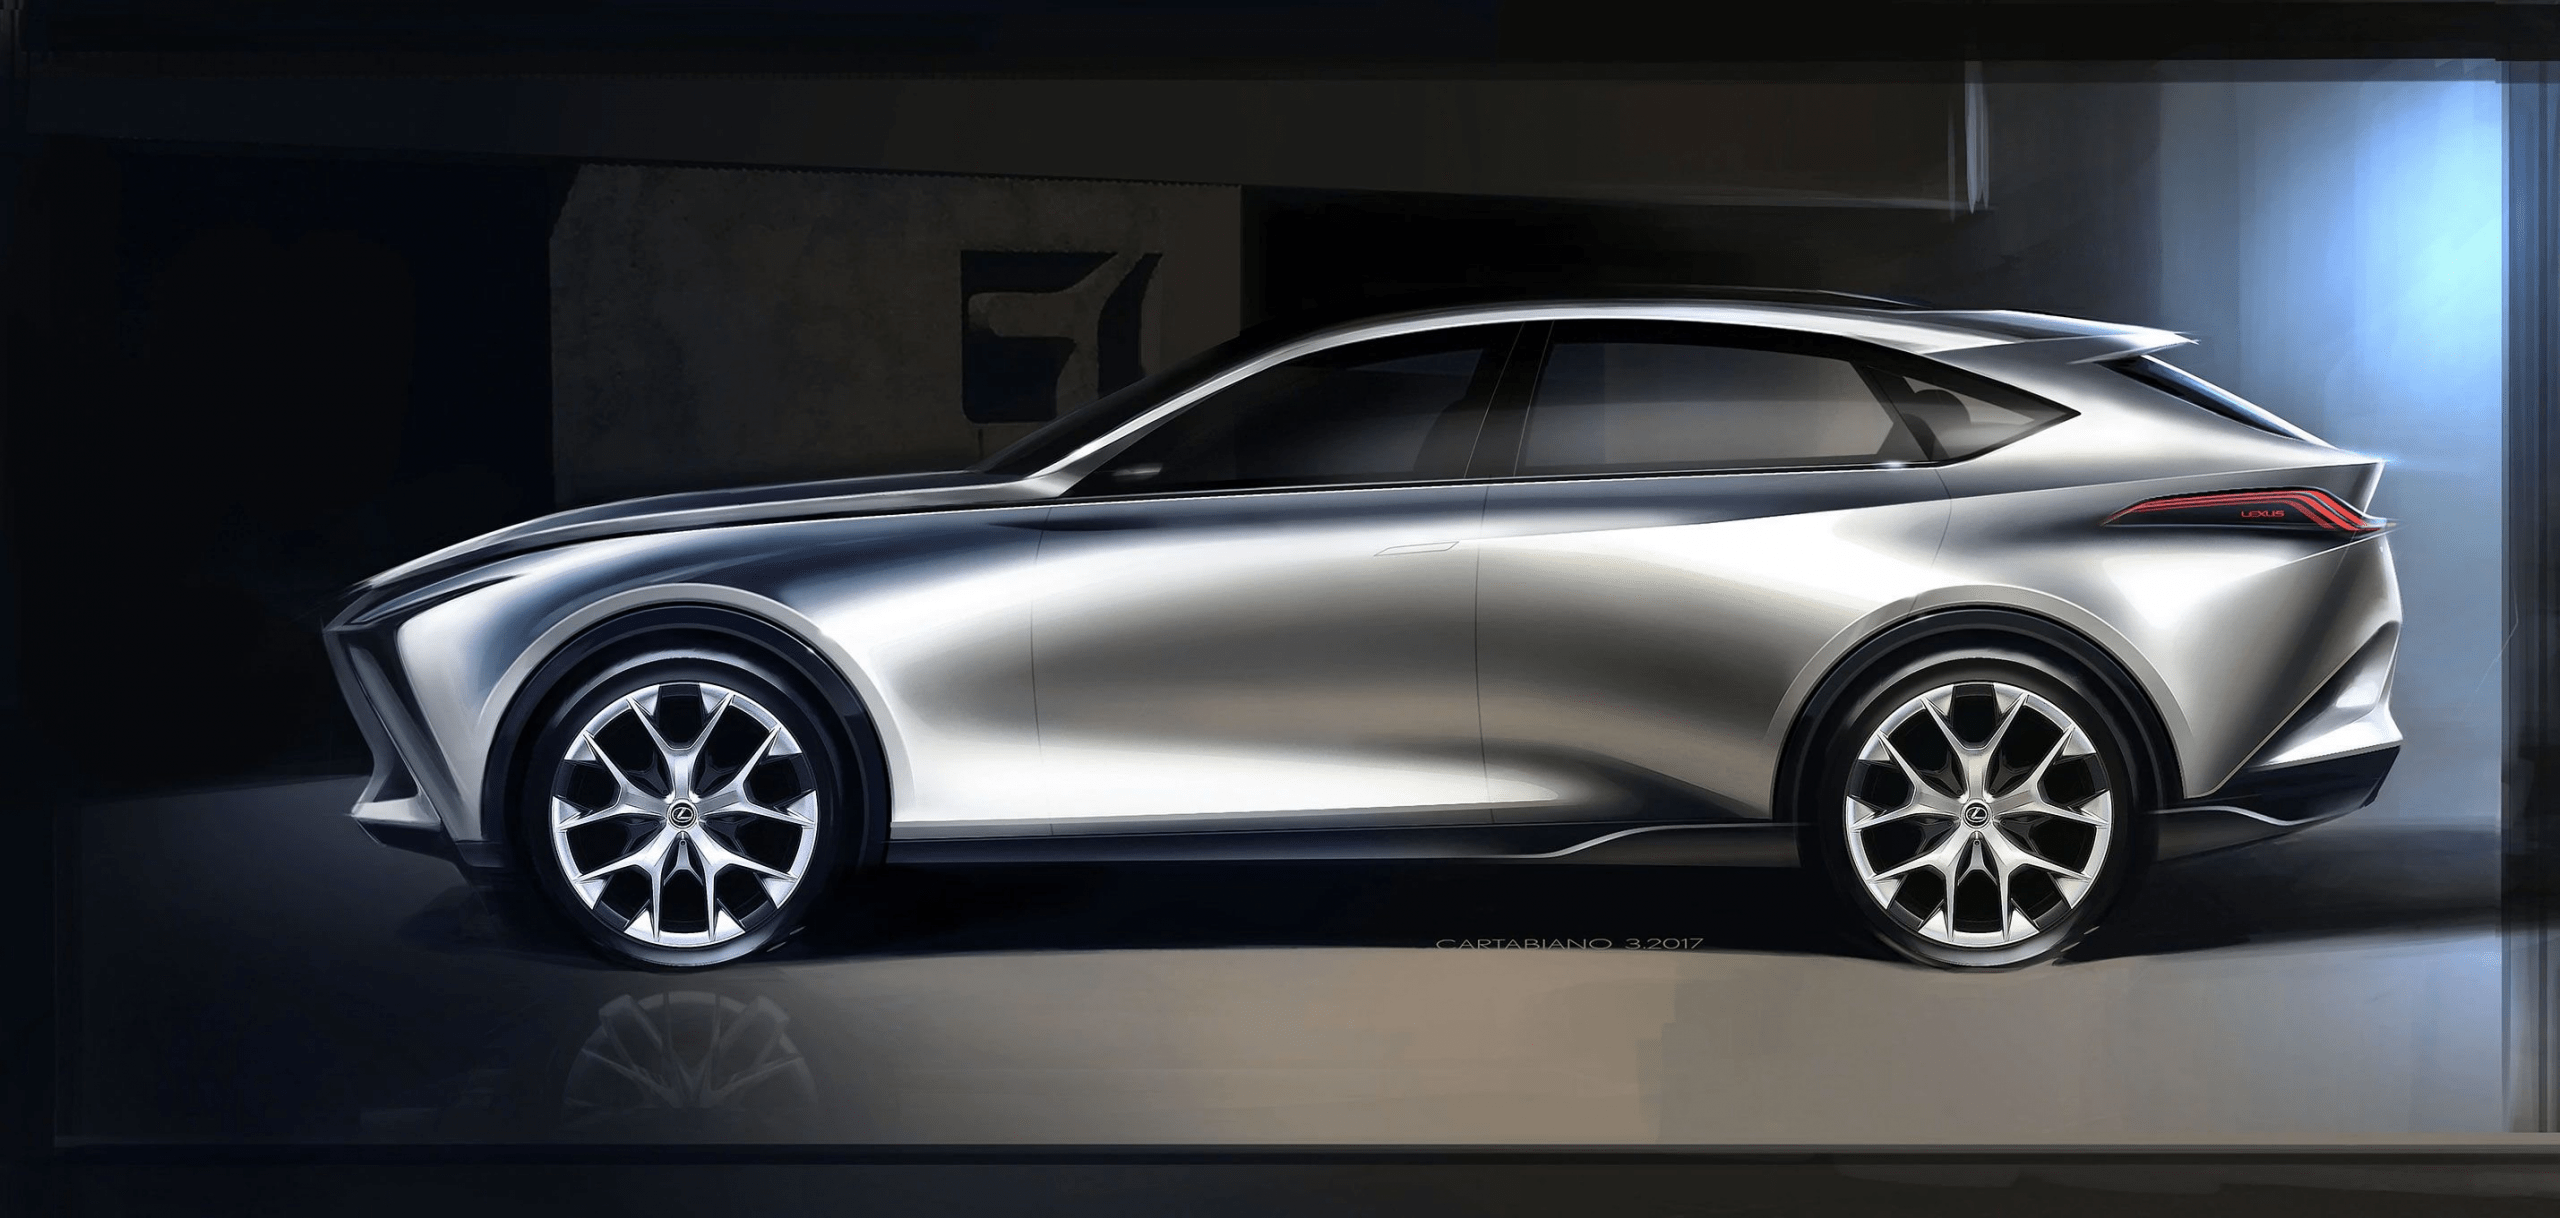 2021 Lexus Lf Lc Specs and Review